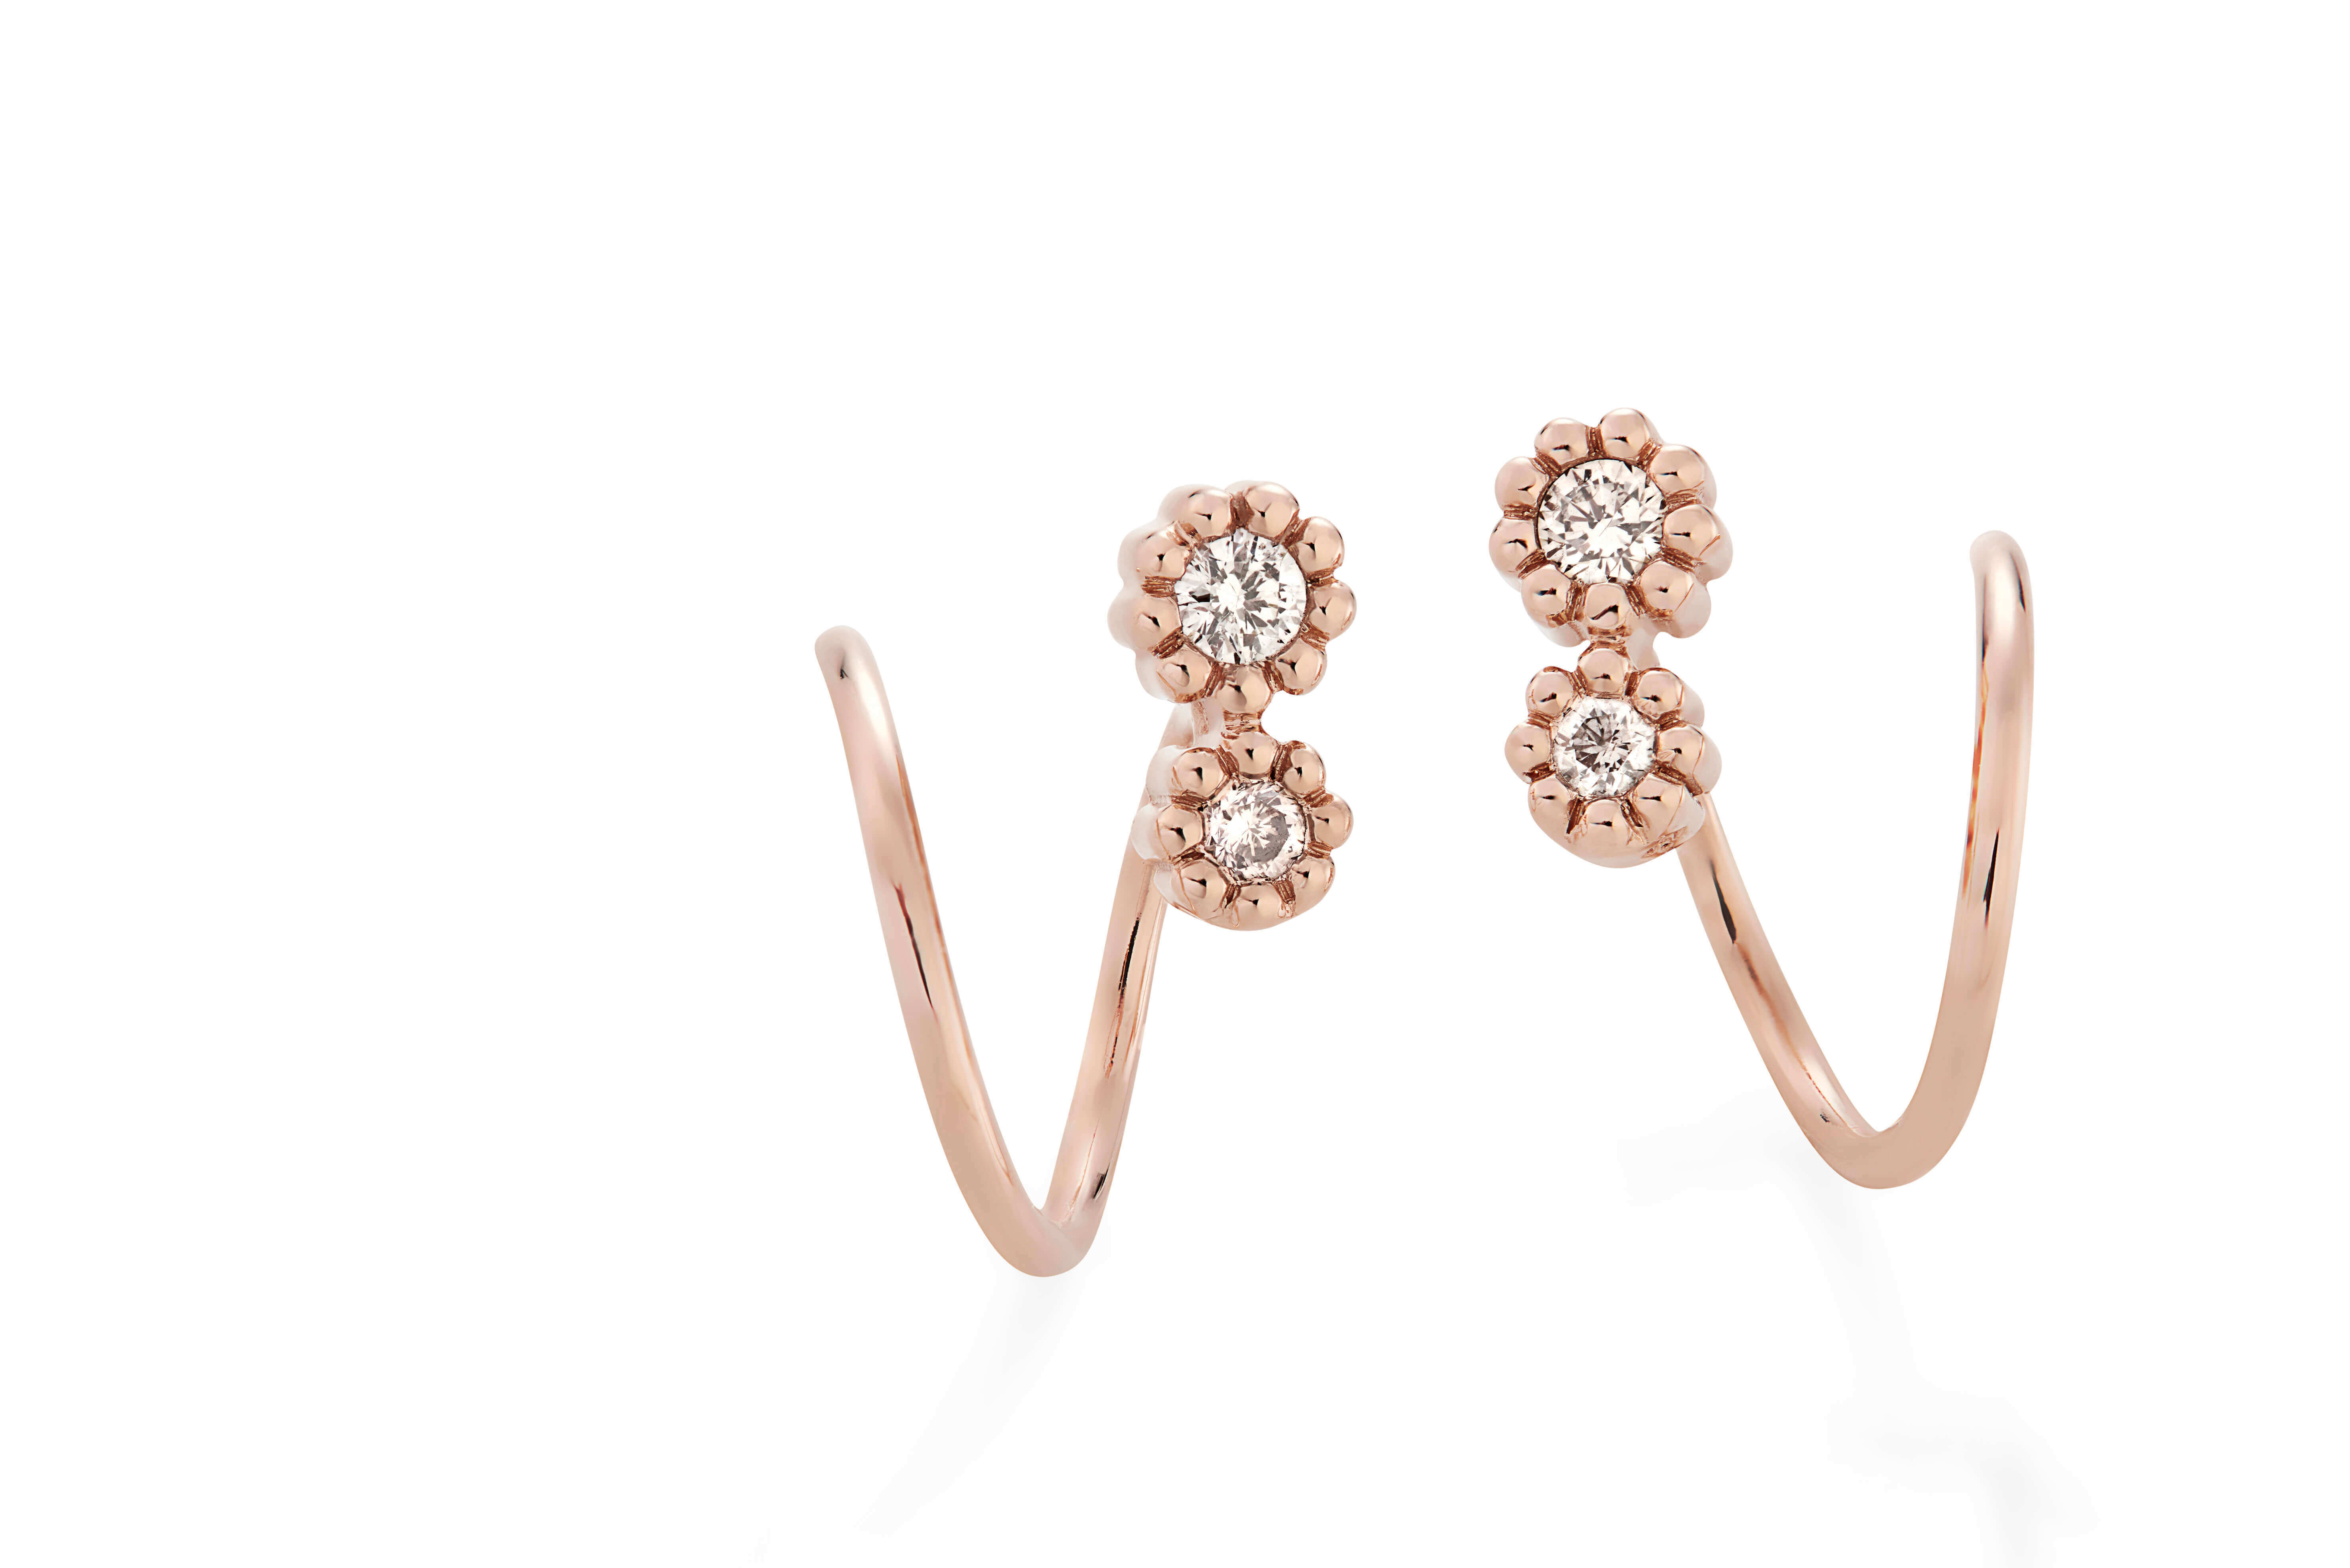 MyCollection_H.Stern_-_earrings_in_18K_rose_gold_with_diamonds_accents_(B0B_209482)